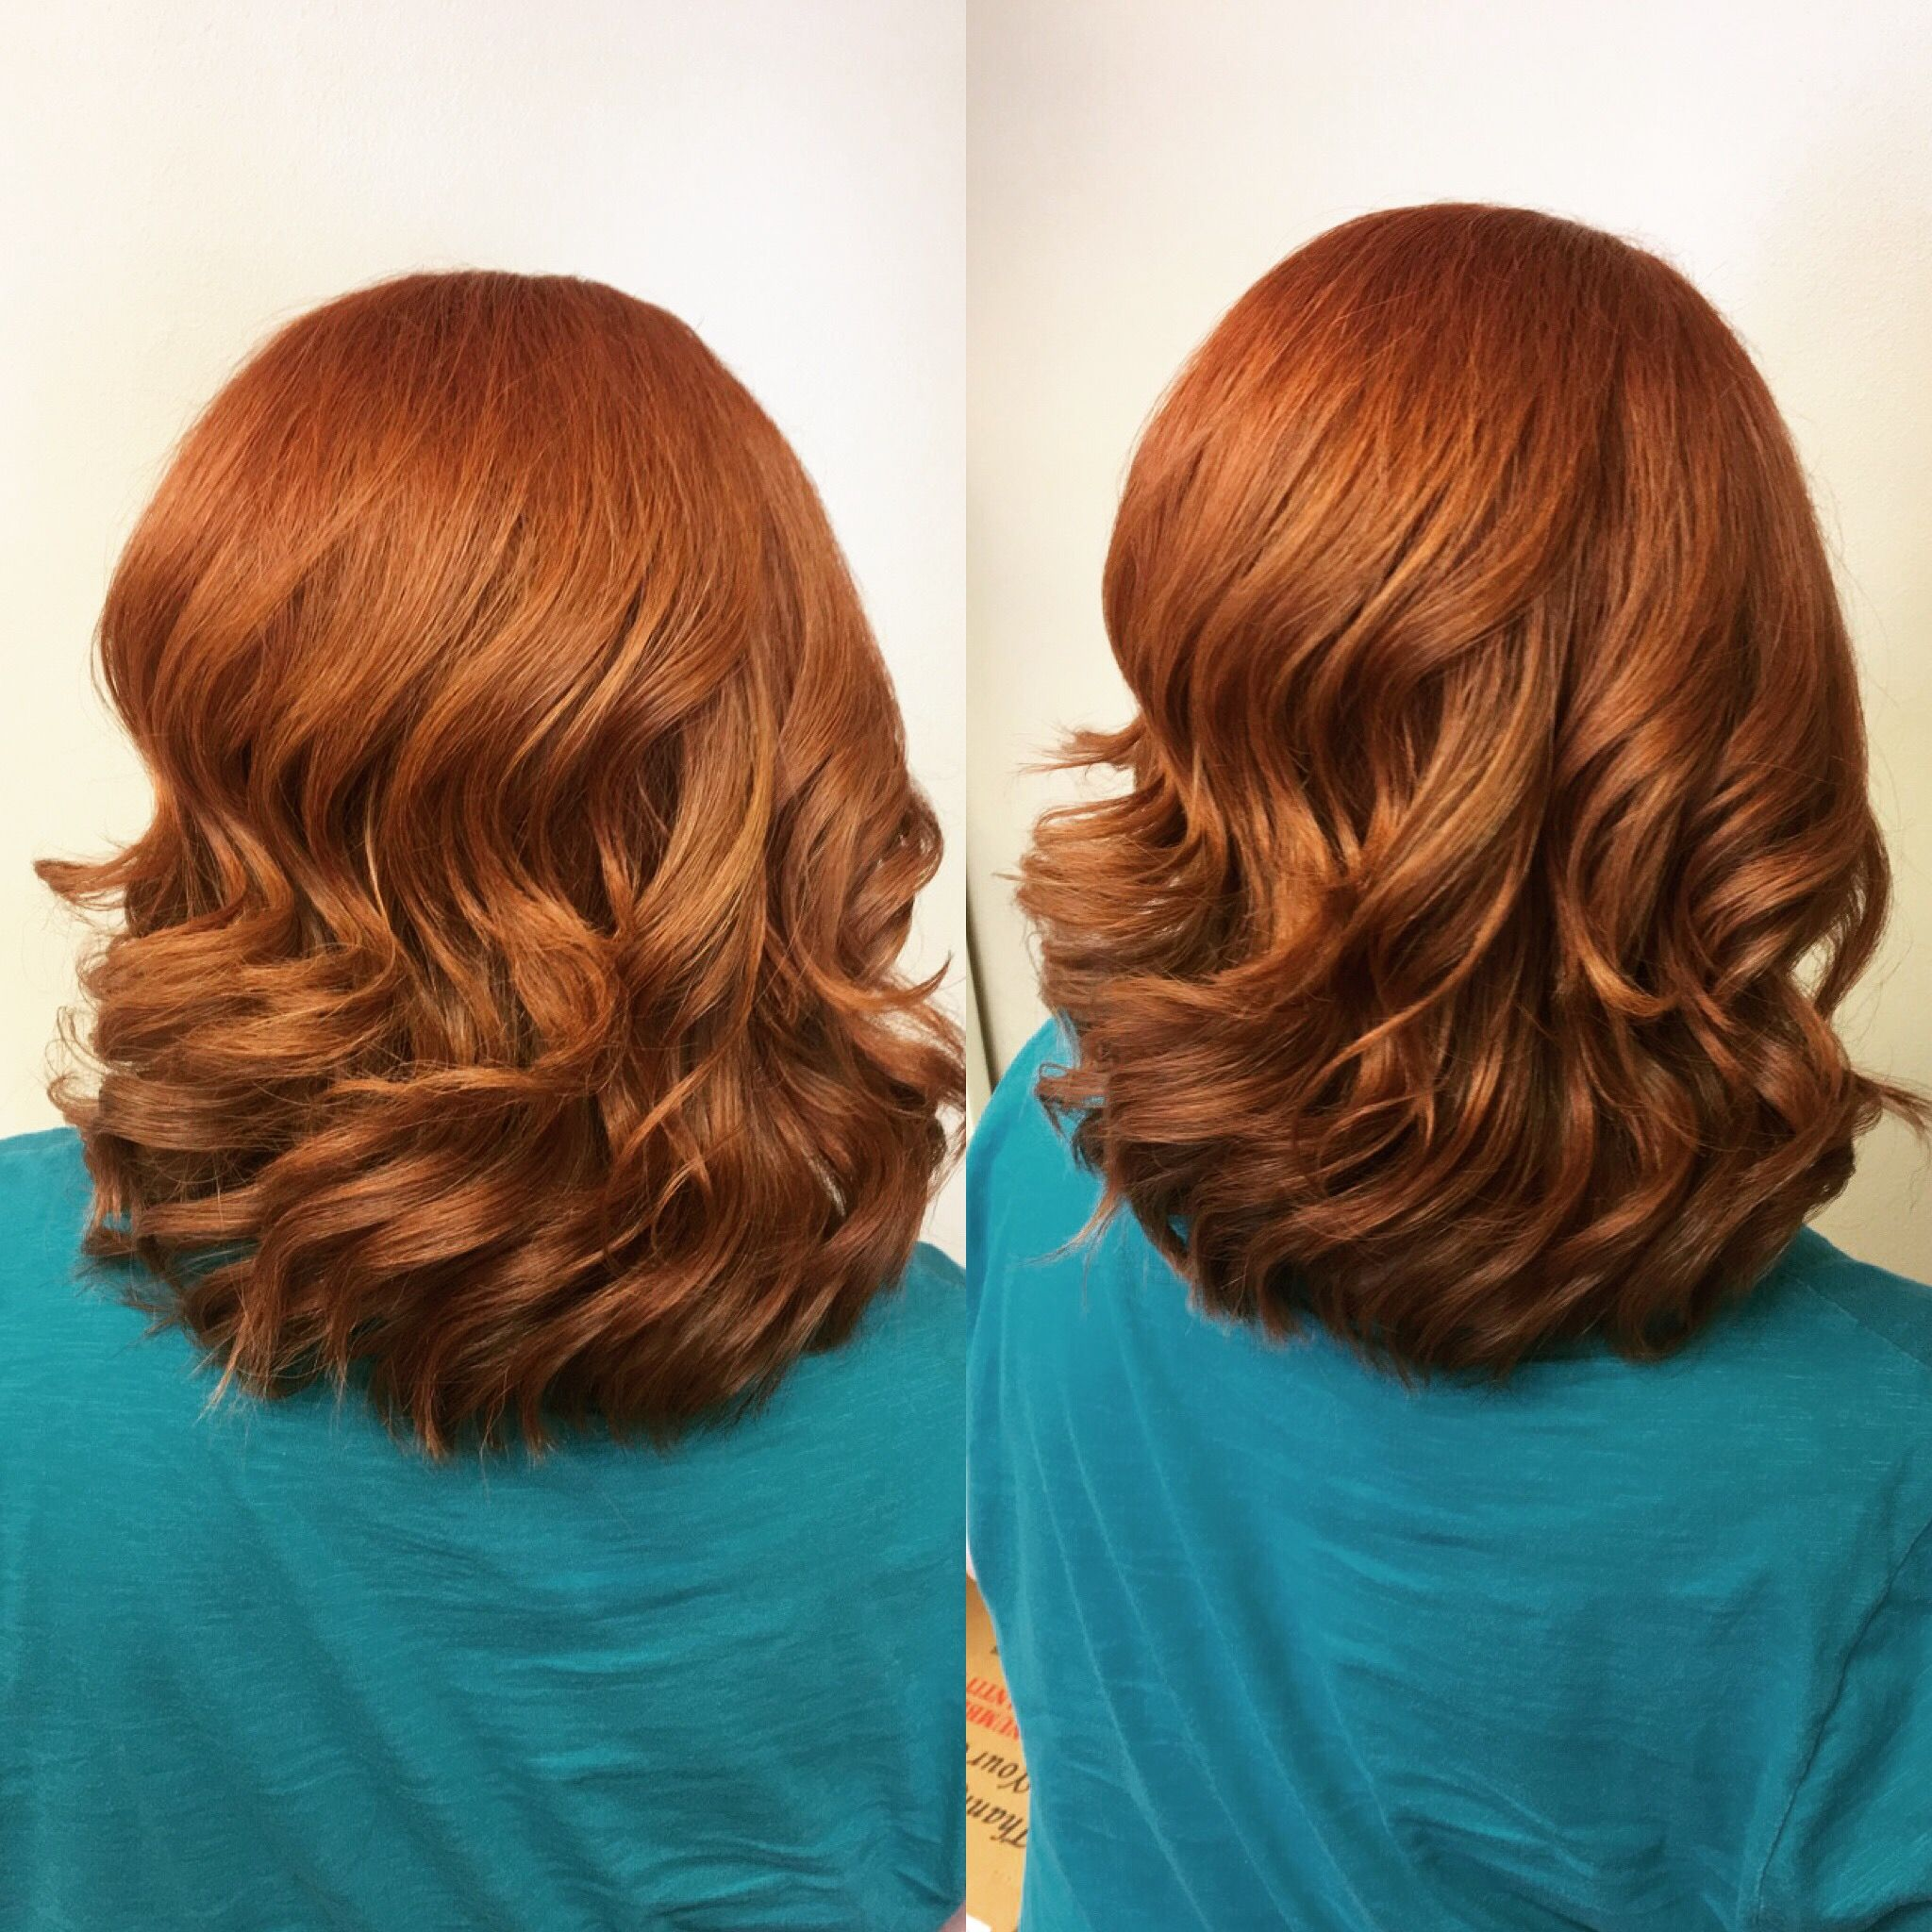 Lob waves candidascanvas planohairstylist friscohairstylist